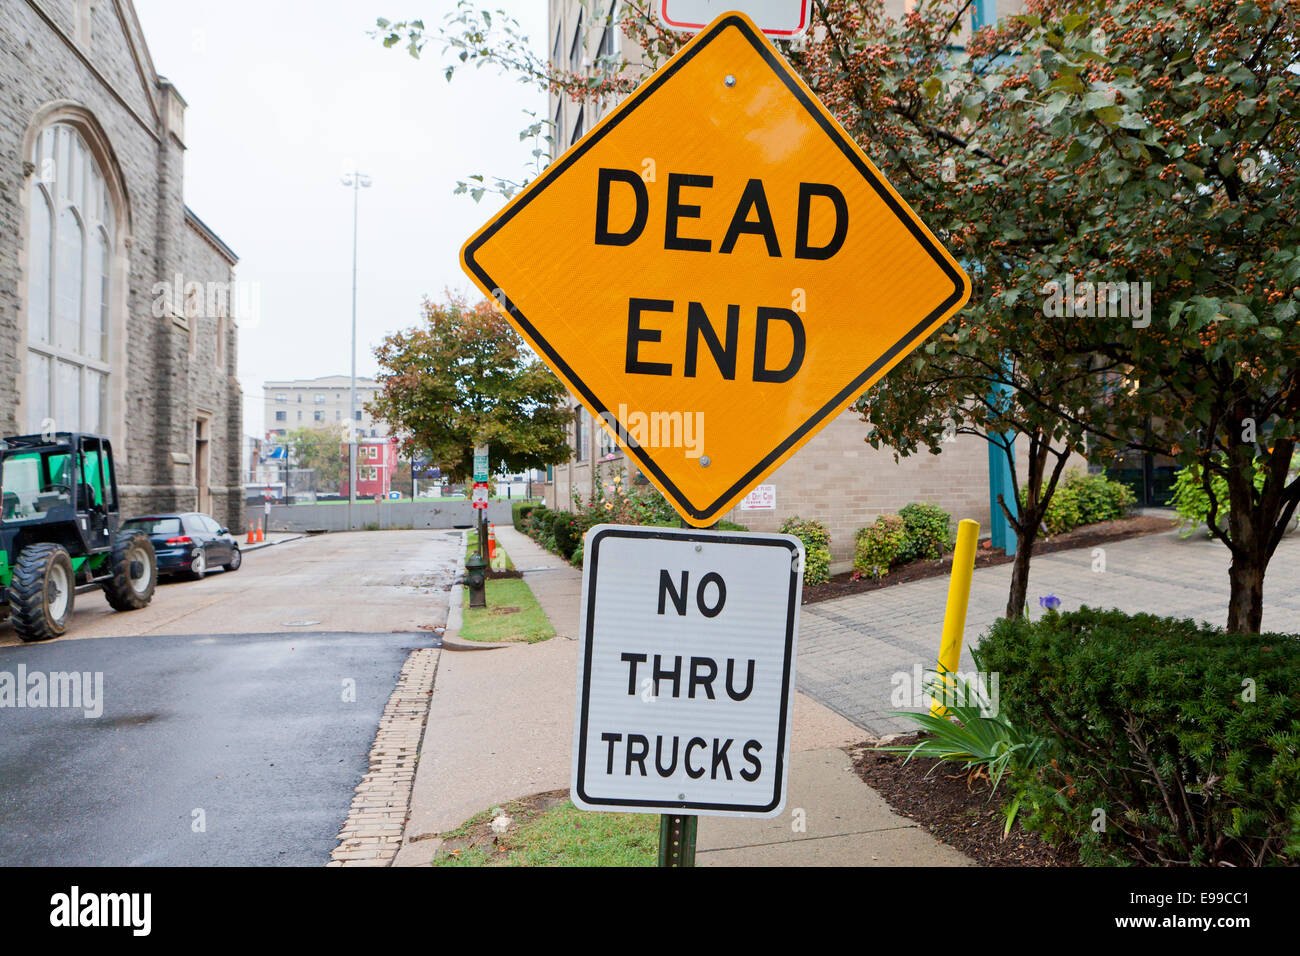 Dead end sign on road - USA - Stock Image